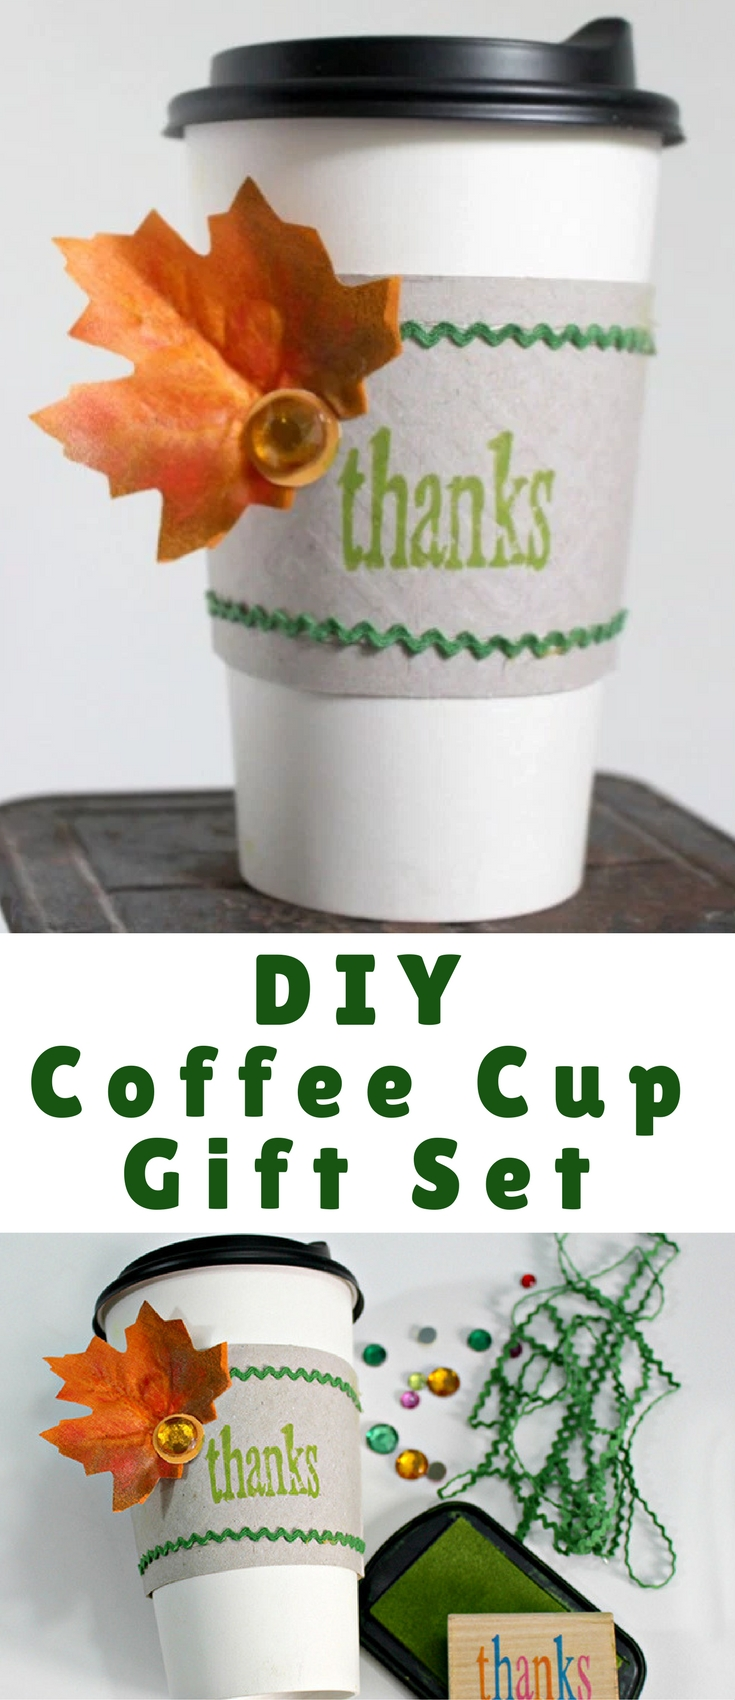 This DIY coffee cup gift set makes a unique gift for anyone who deserves a simple Thank You this holiday season. Filled with coffee gift cards, hot cocoa packets, K-cups and sweet treats, it's perfect for teachers, neighbors, hostesses, co-workers or coffee lovers on your list.